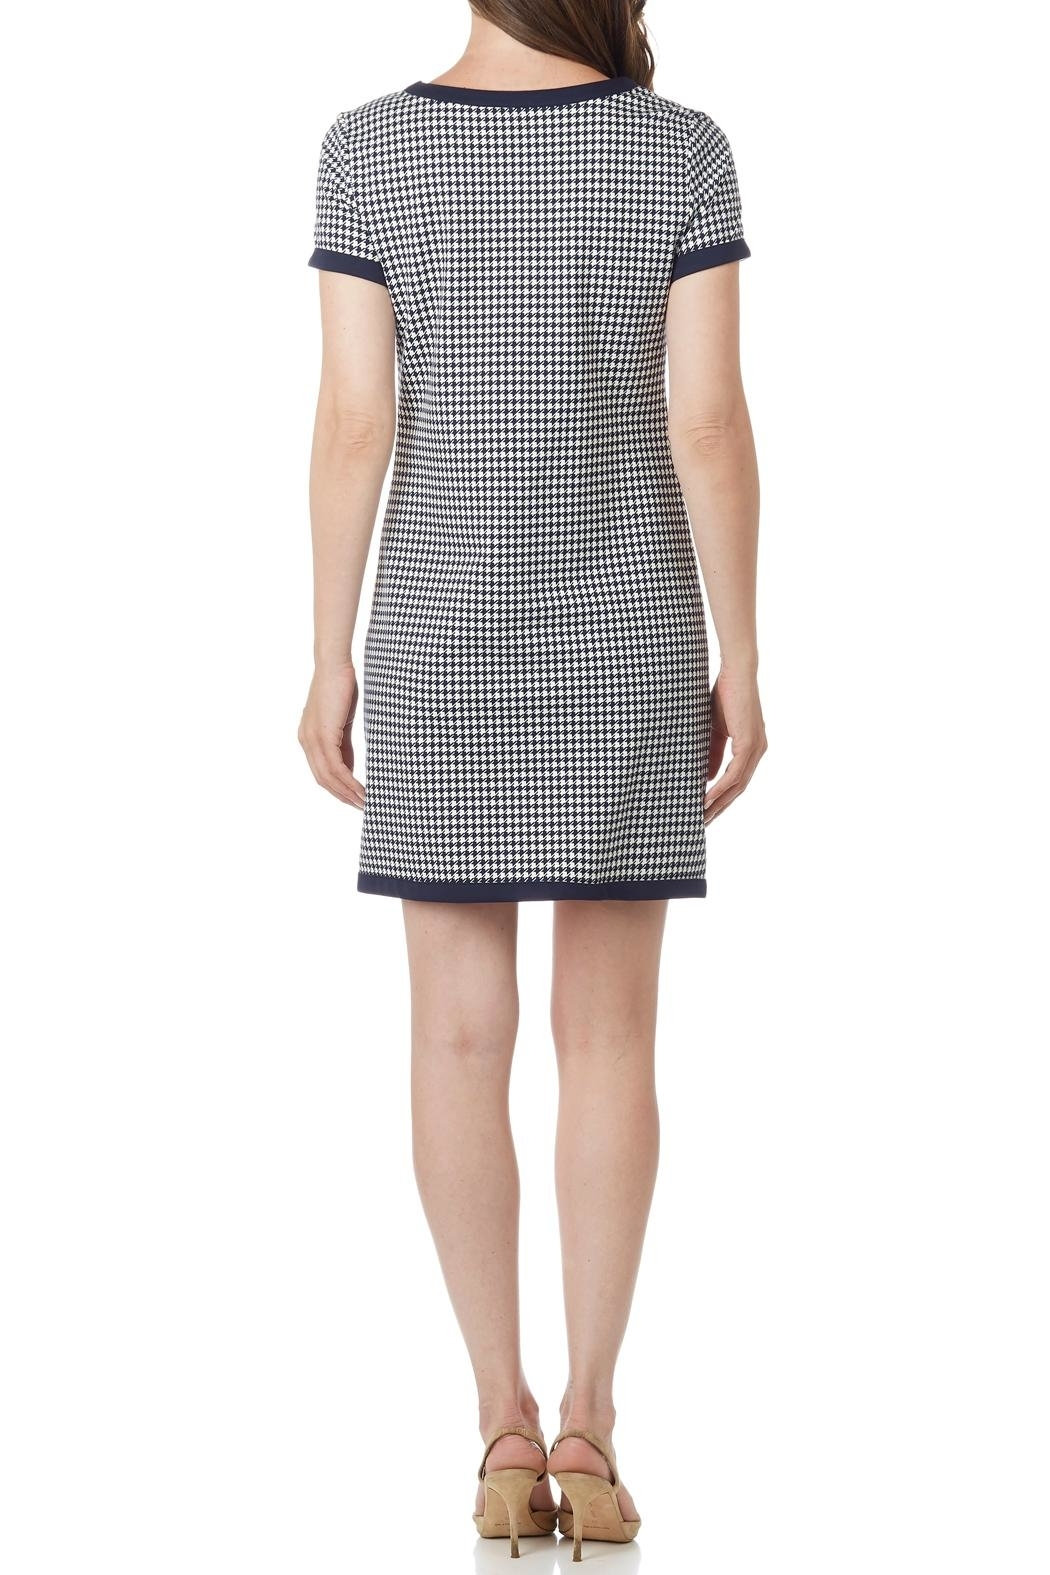 Jude Connally Parker Ponte Dress - Front Full Image